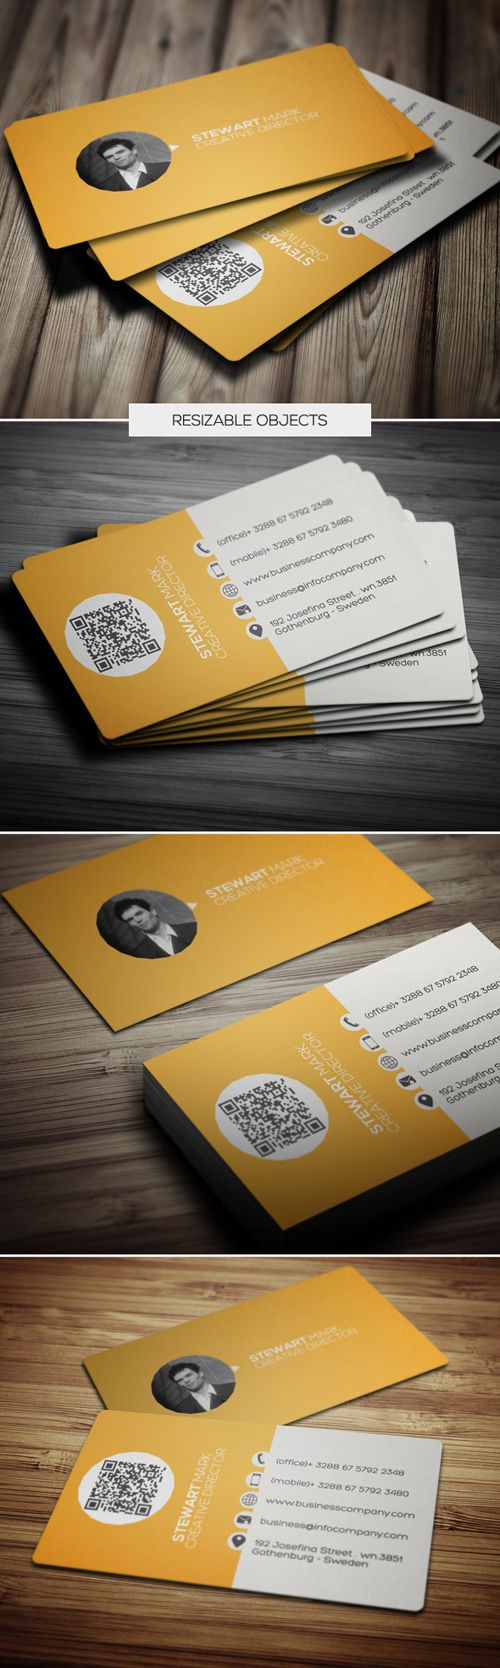 Designing a business card creative thinking in business business card designs e5d7c3ef8134967061a9057a71cb5c75 f6b60a94562e95d26ca9867a08194b90 de532db7f6f634360ab427faaeffd457 reheart Image collections